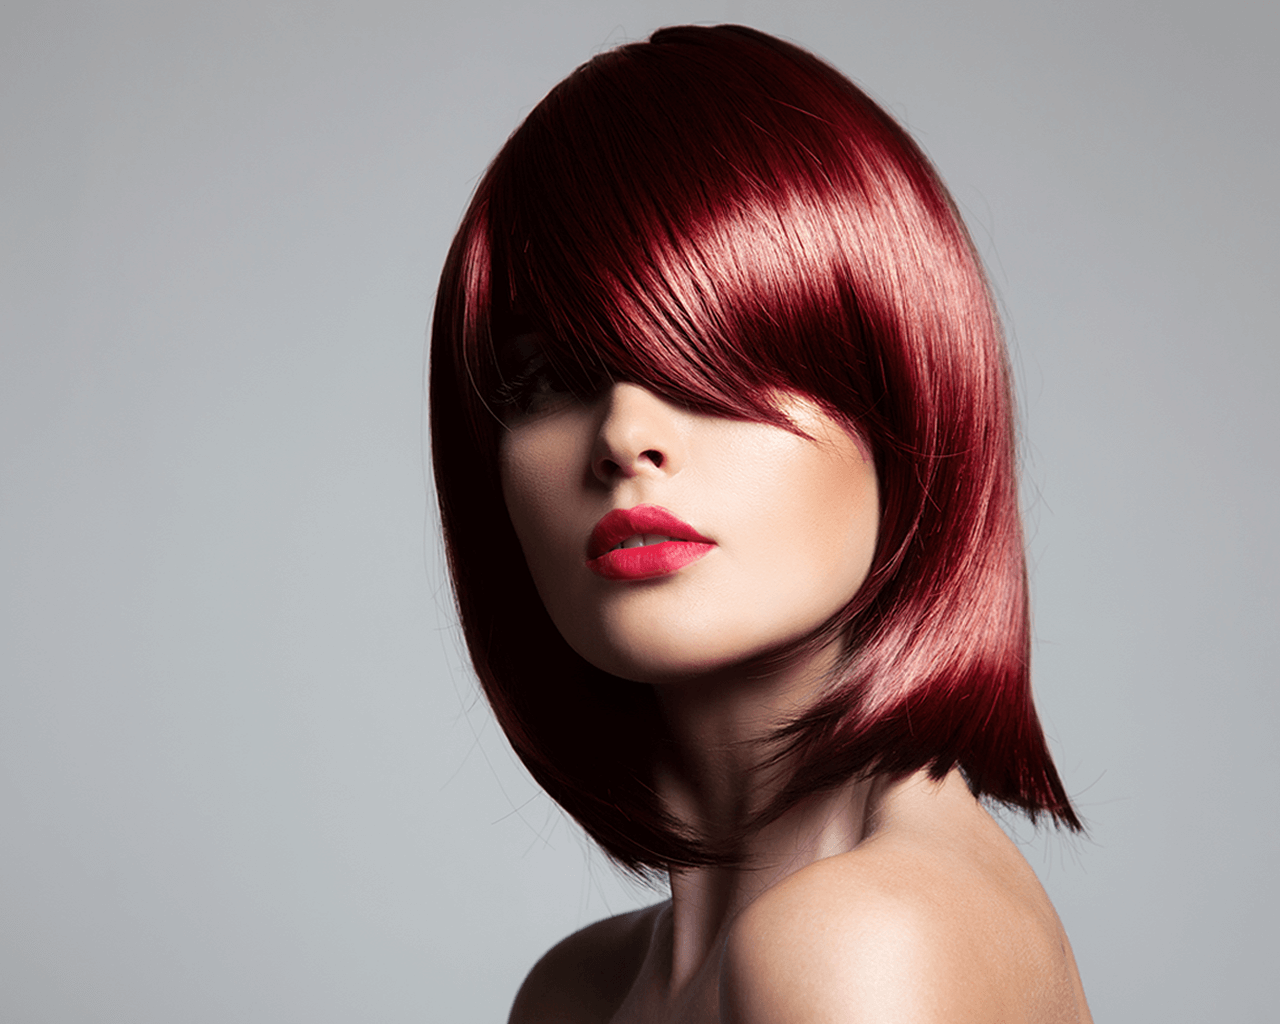 Glossary: Image of a woman with short red hair, in a tapered style.